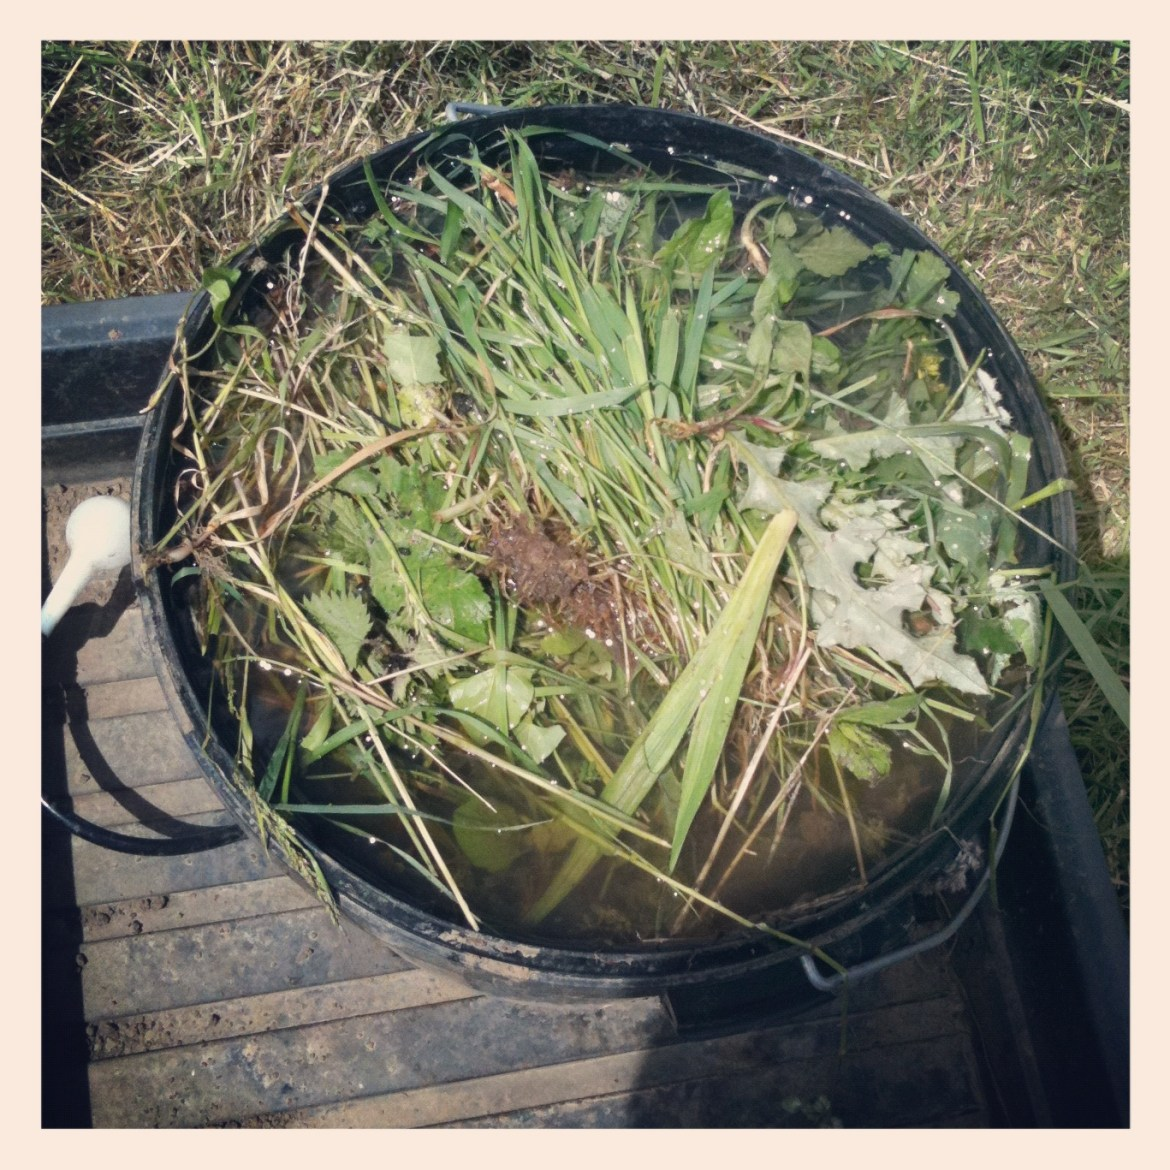 making a plant feed from weeds